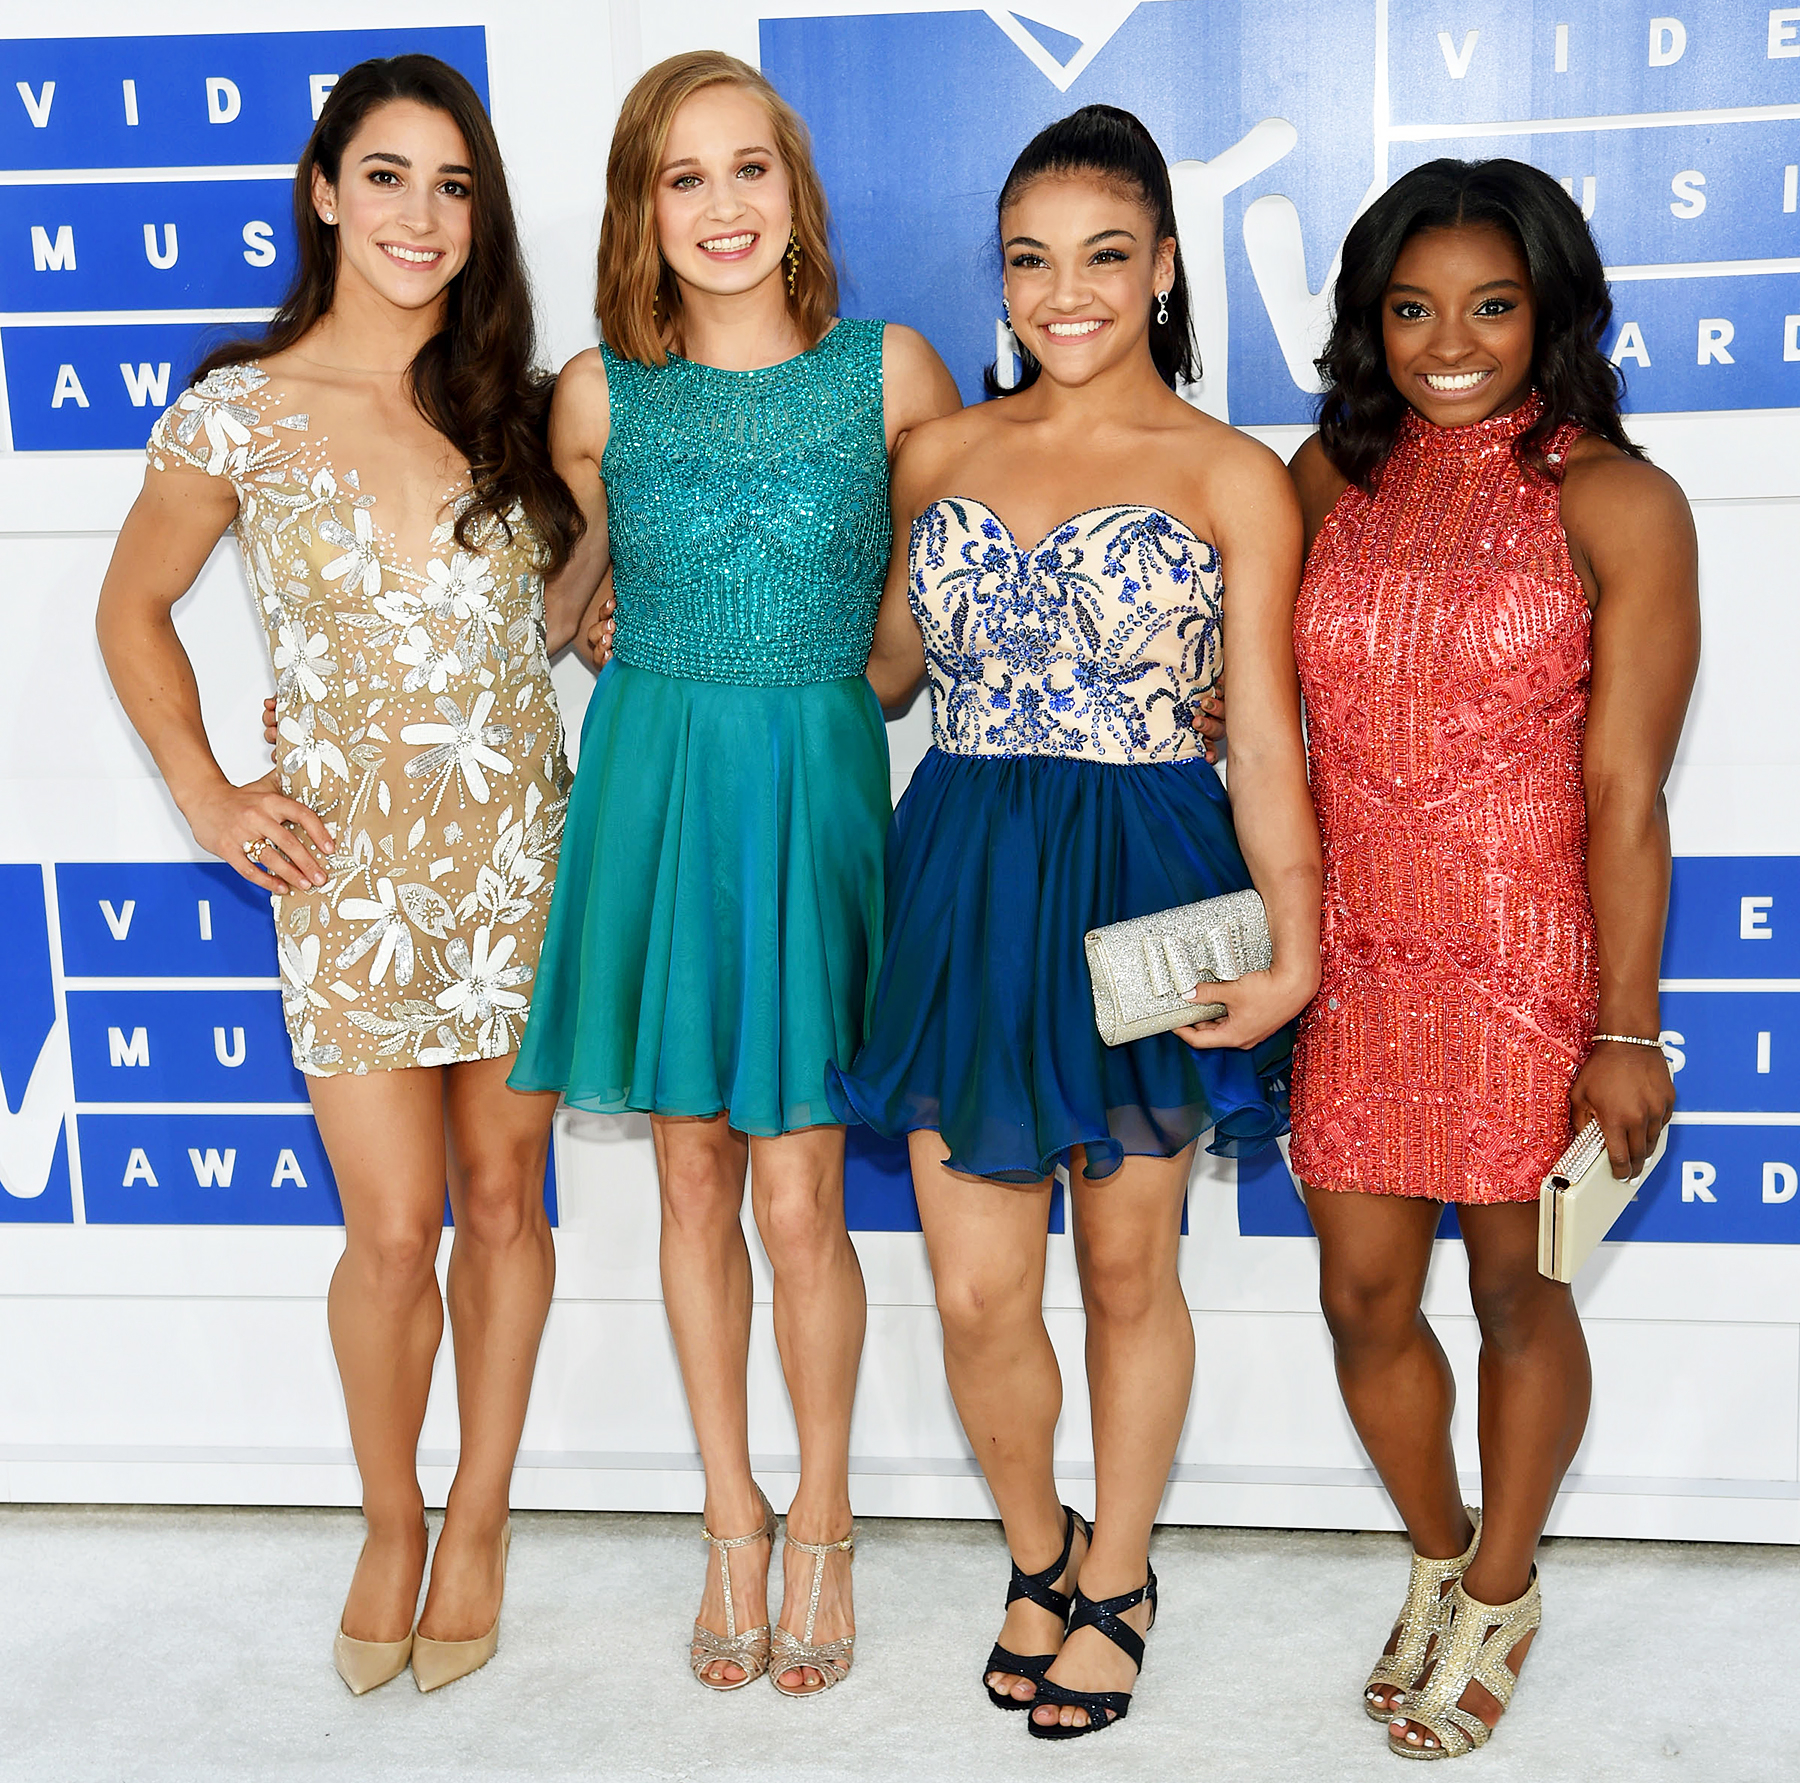 Final Five Aly Raisman Madison Kocian Laurie Hernandez Simone Biles